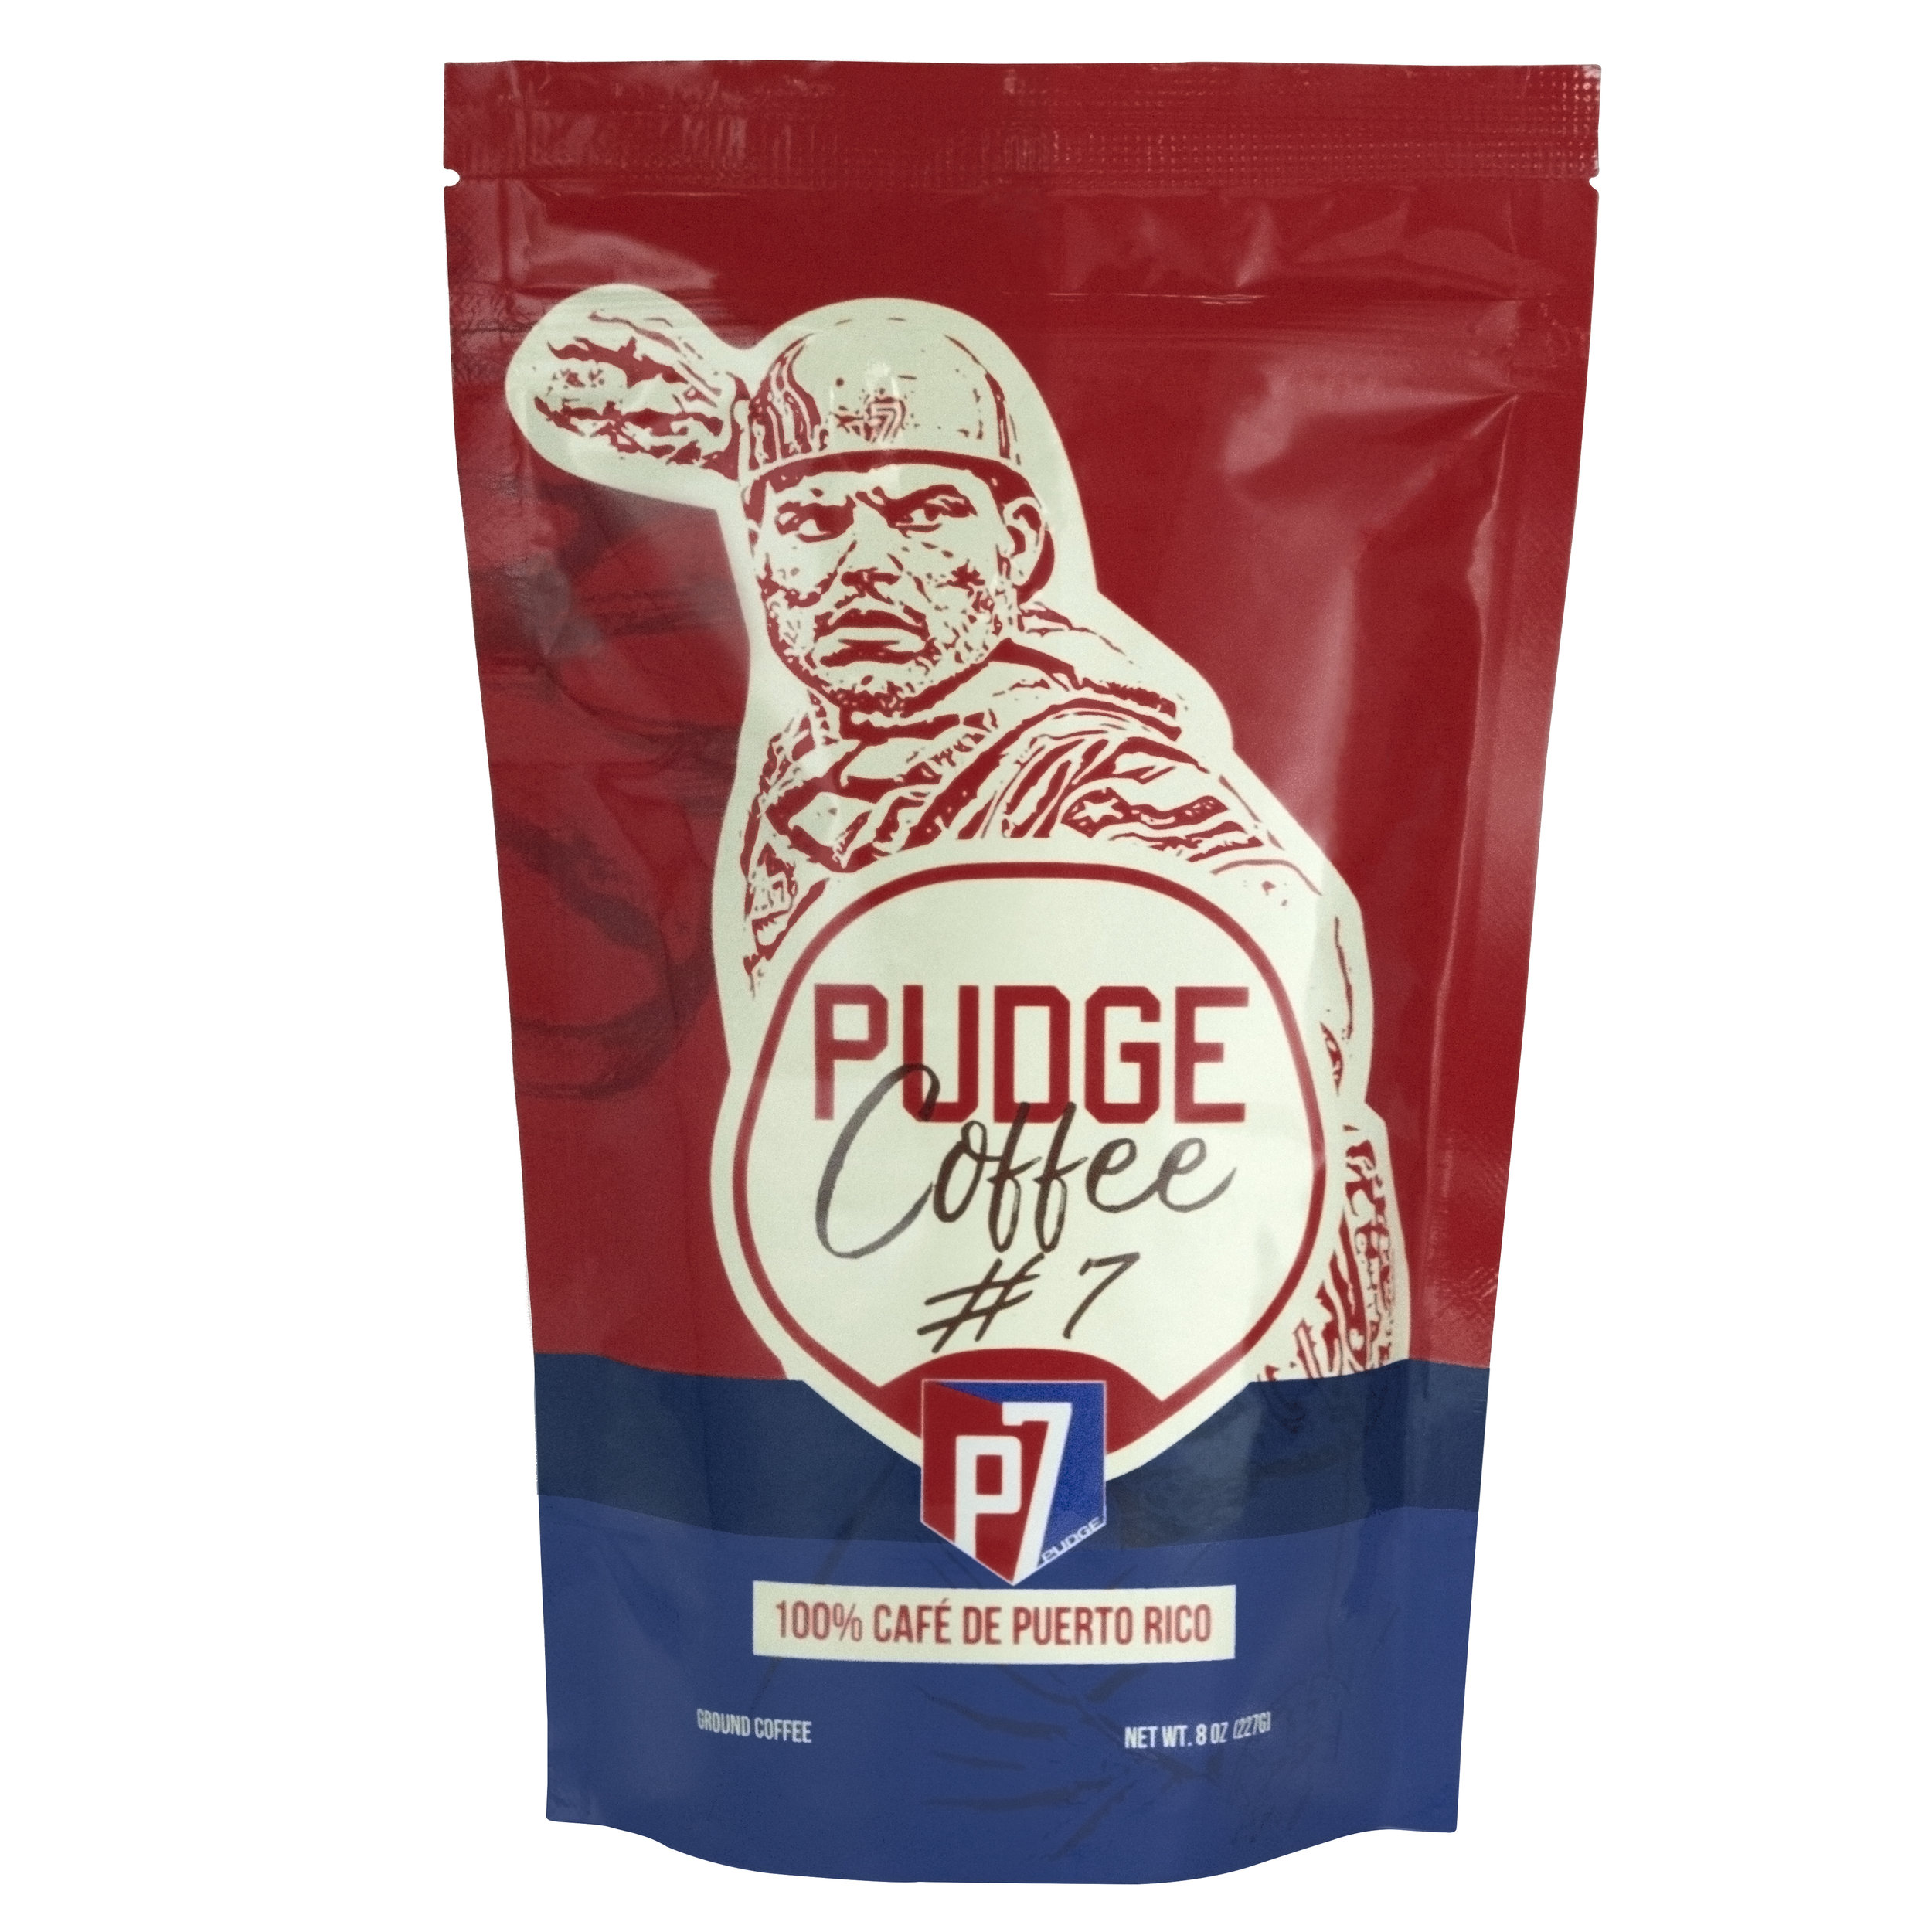 Pudge Coffee 8oz Pouch